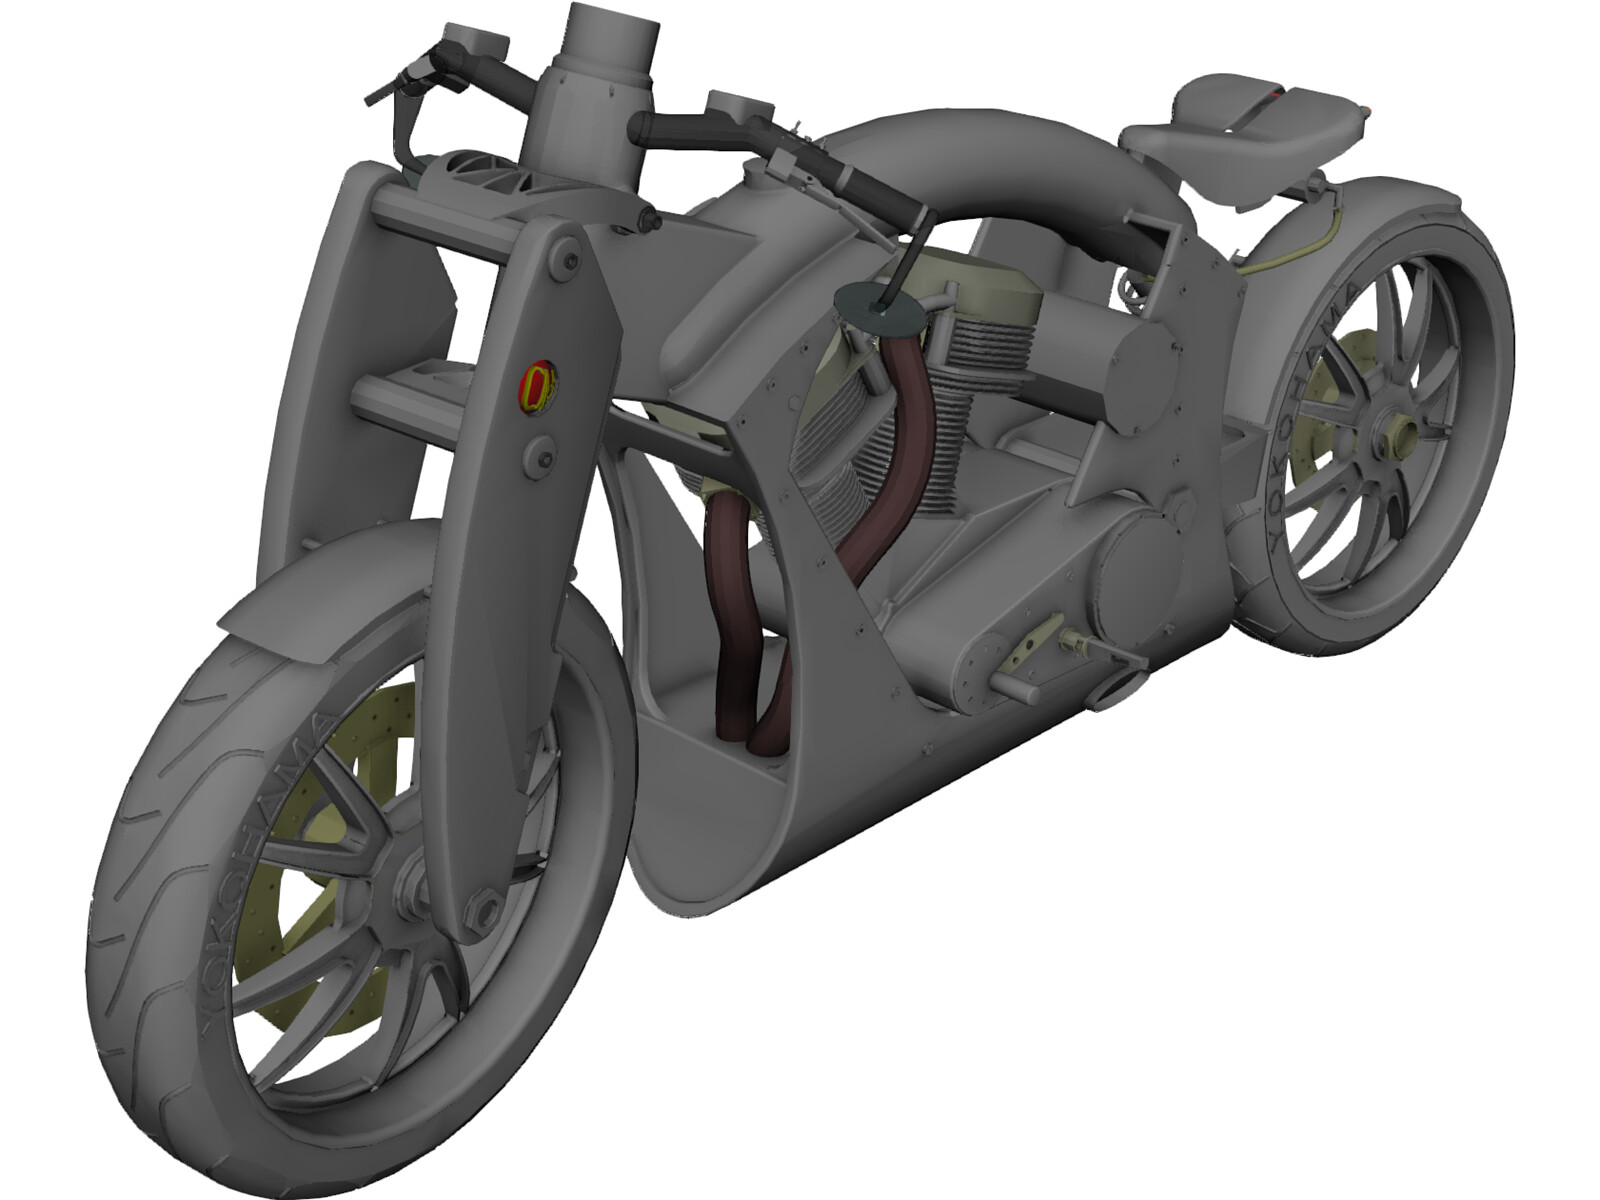 Motorcycle Yokohama 3d Cad Model 3d Cad Browser